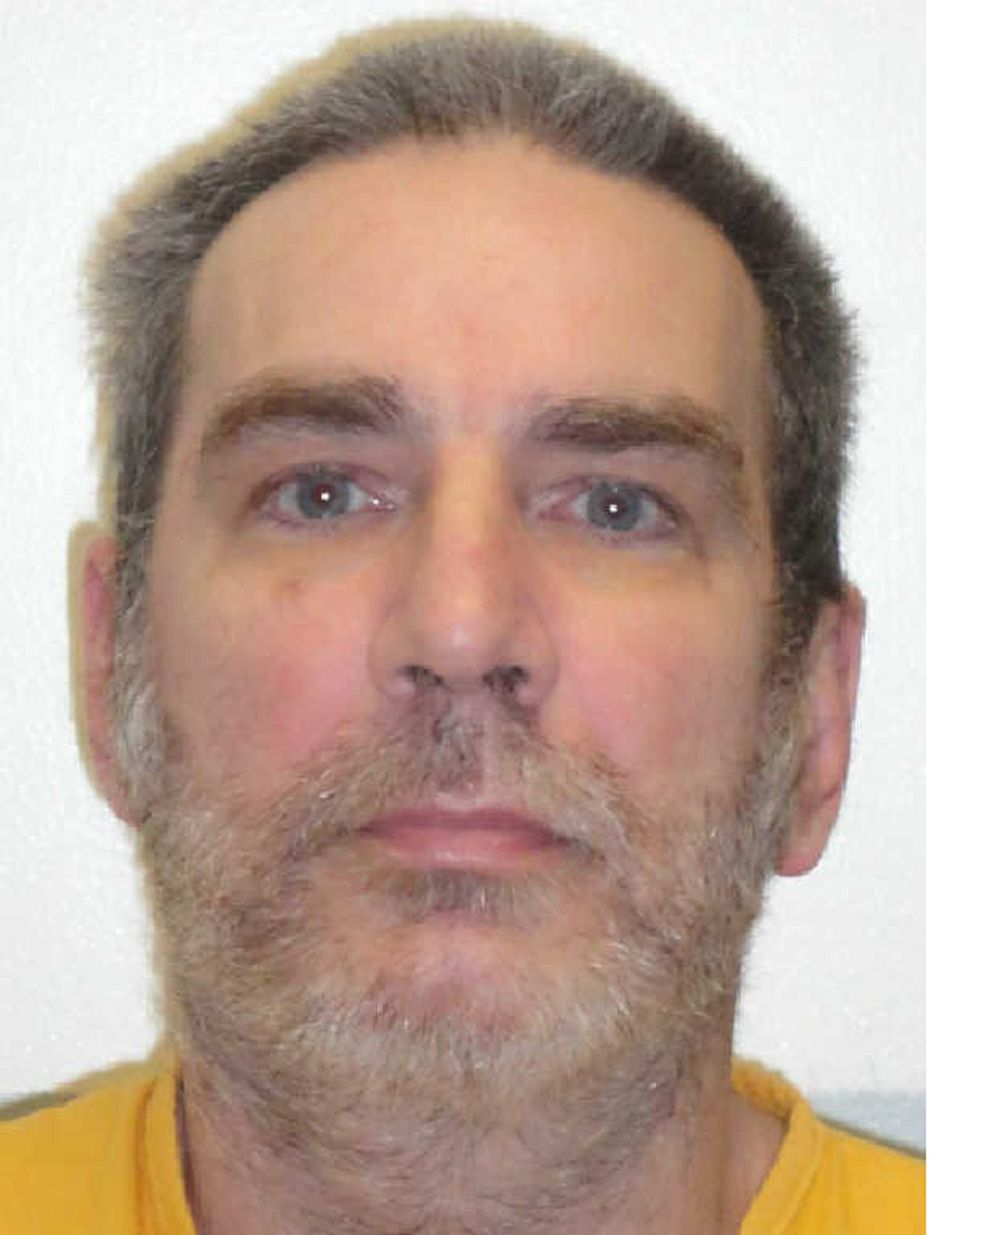 Brian Church escaped the Point MacKenzie Correctional Farm in April, Alaska State Troopers say.